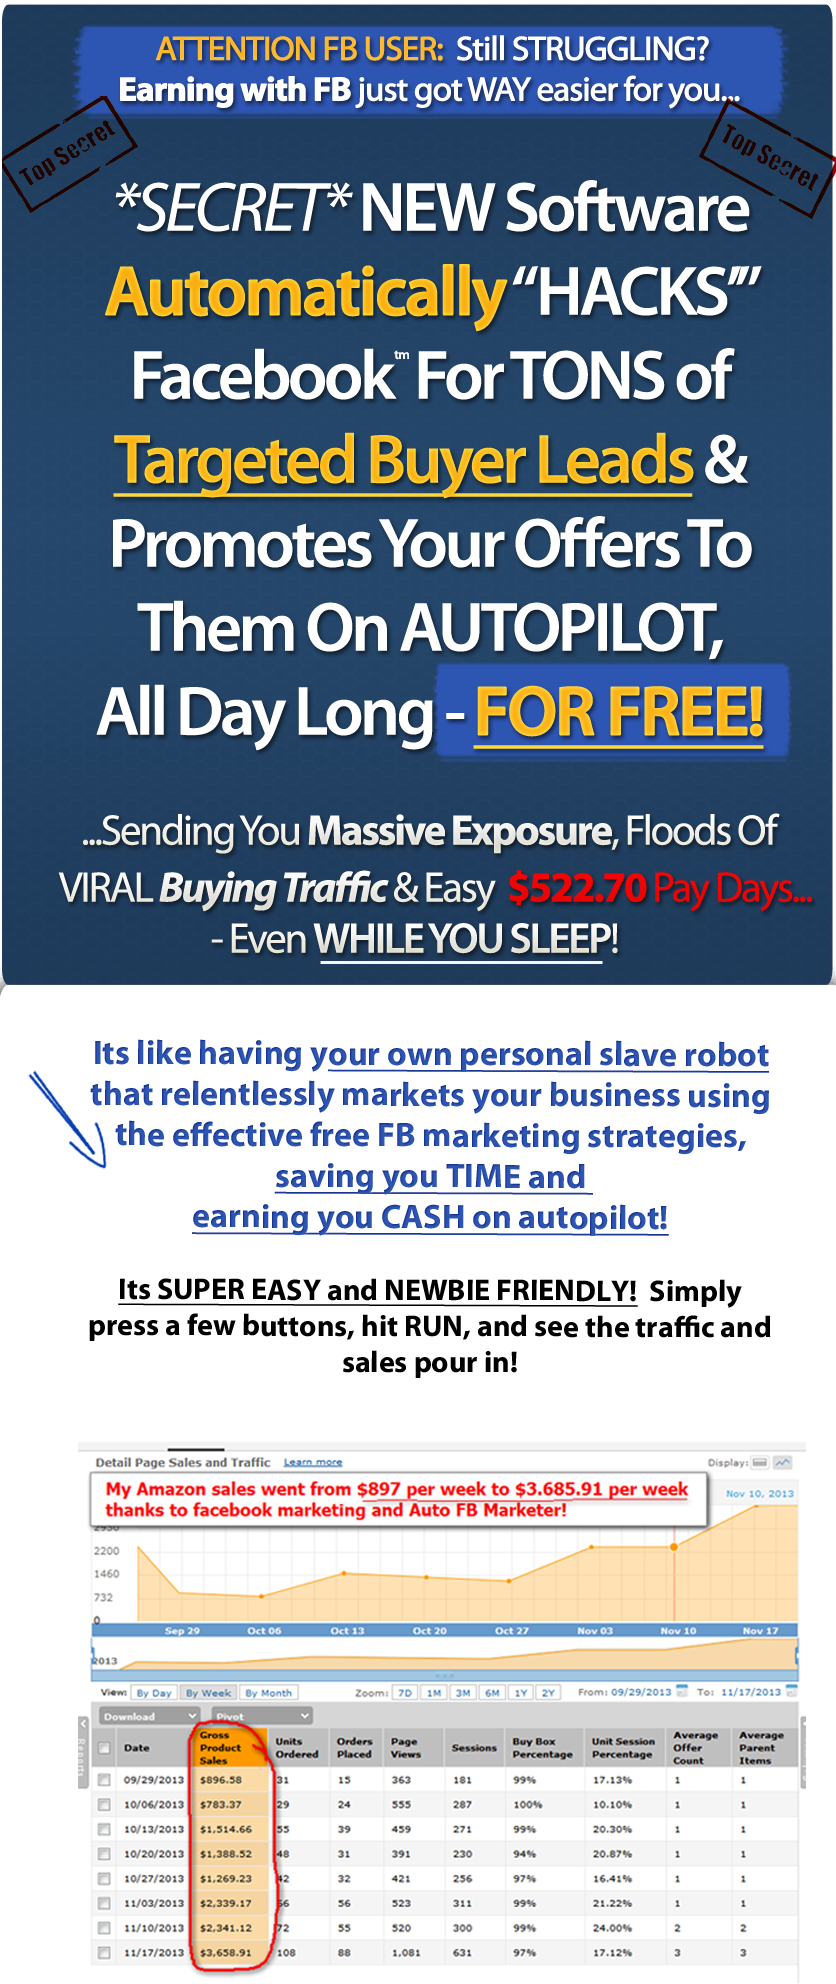 Auto FB Marketer 2.0 Software to automate your marketing